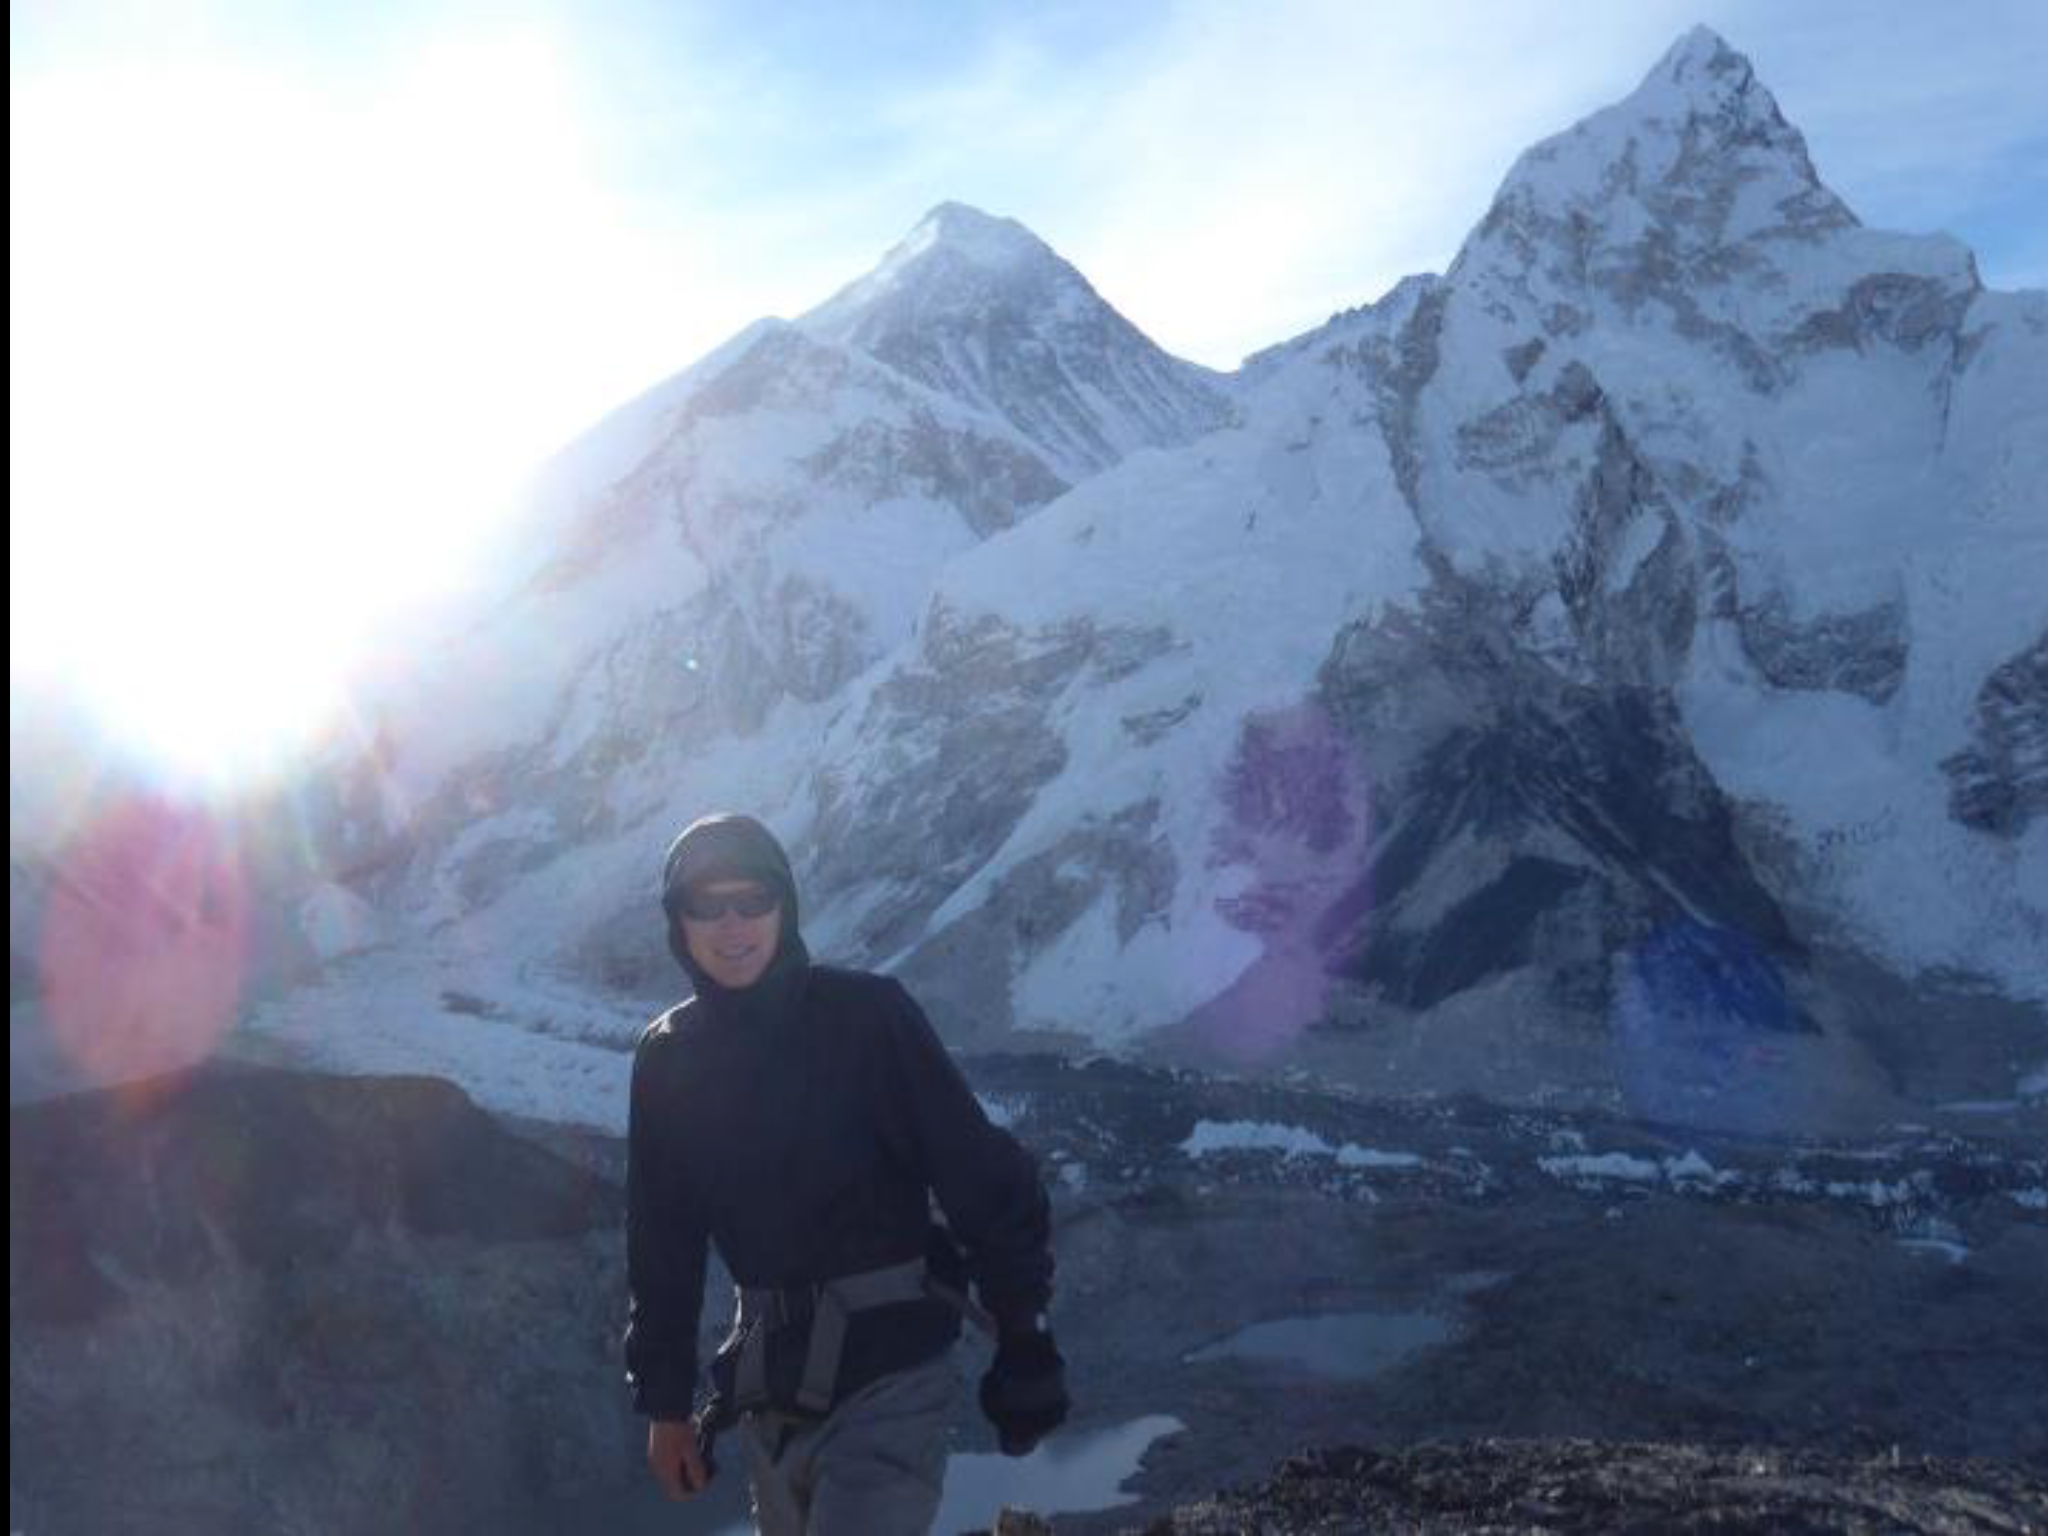 Catching the sunrise with Mount Everest